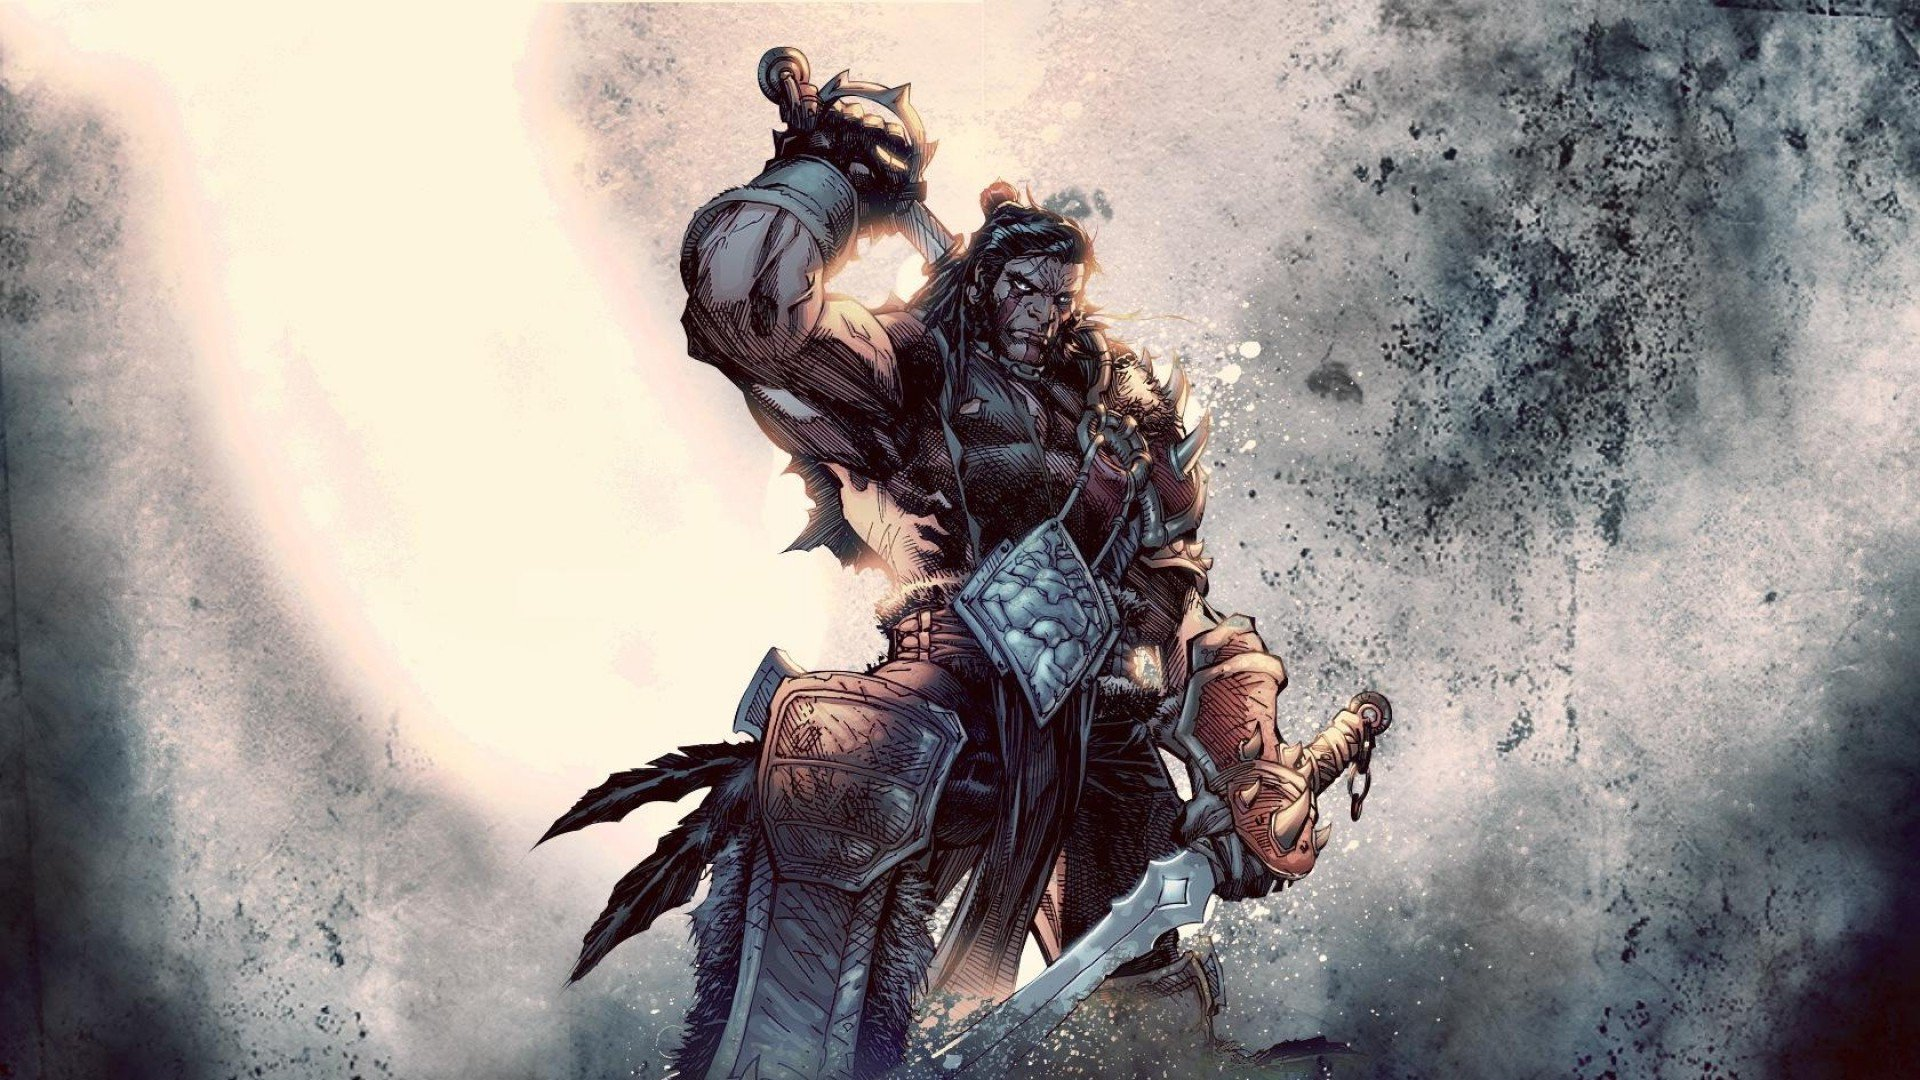 Fun In The World Of Games Hd Wallpapers: Sword World Of Warcraft, HD Games, 4k Wallpapers, Images